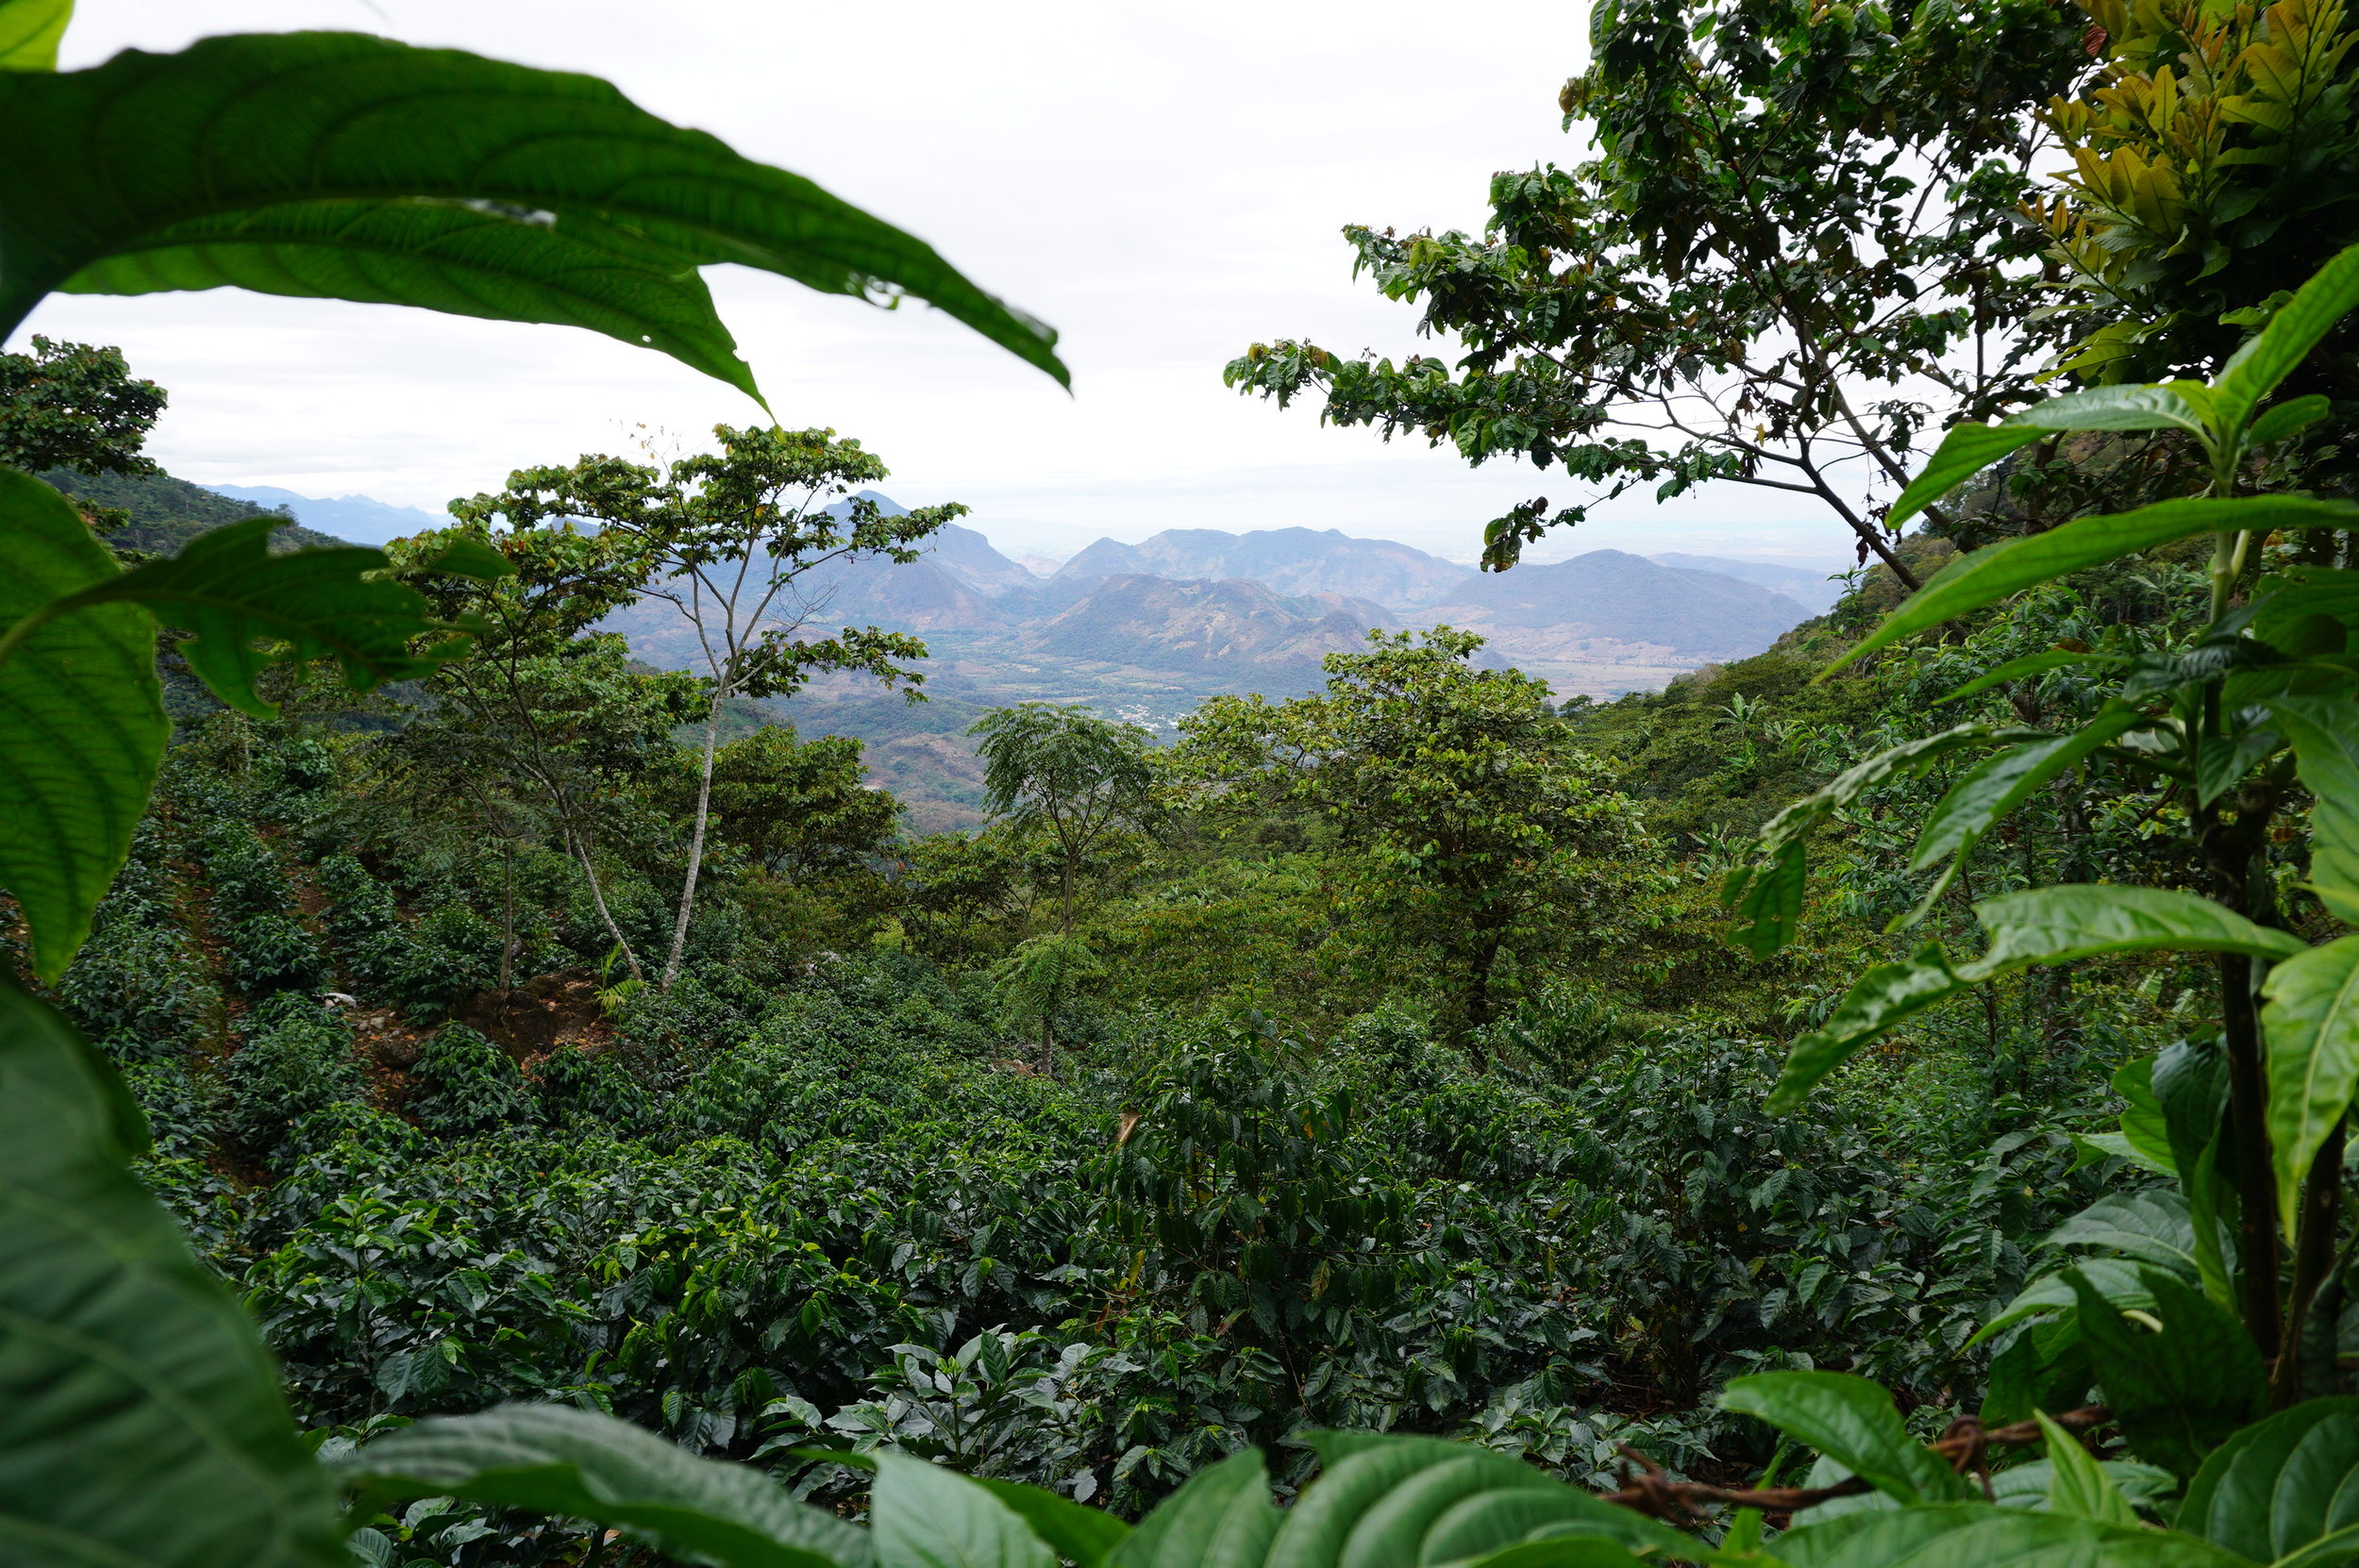 View over a coffee field in Huehuetenango to Mexico.